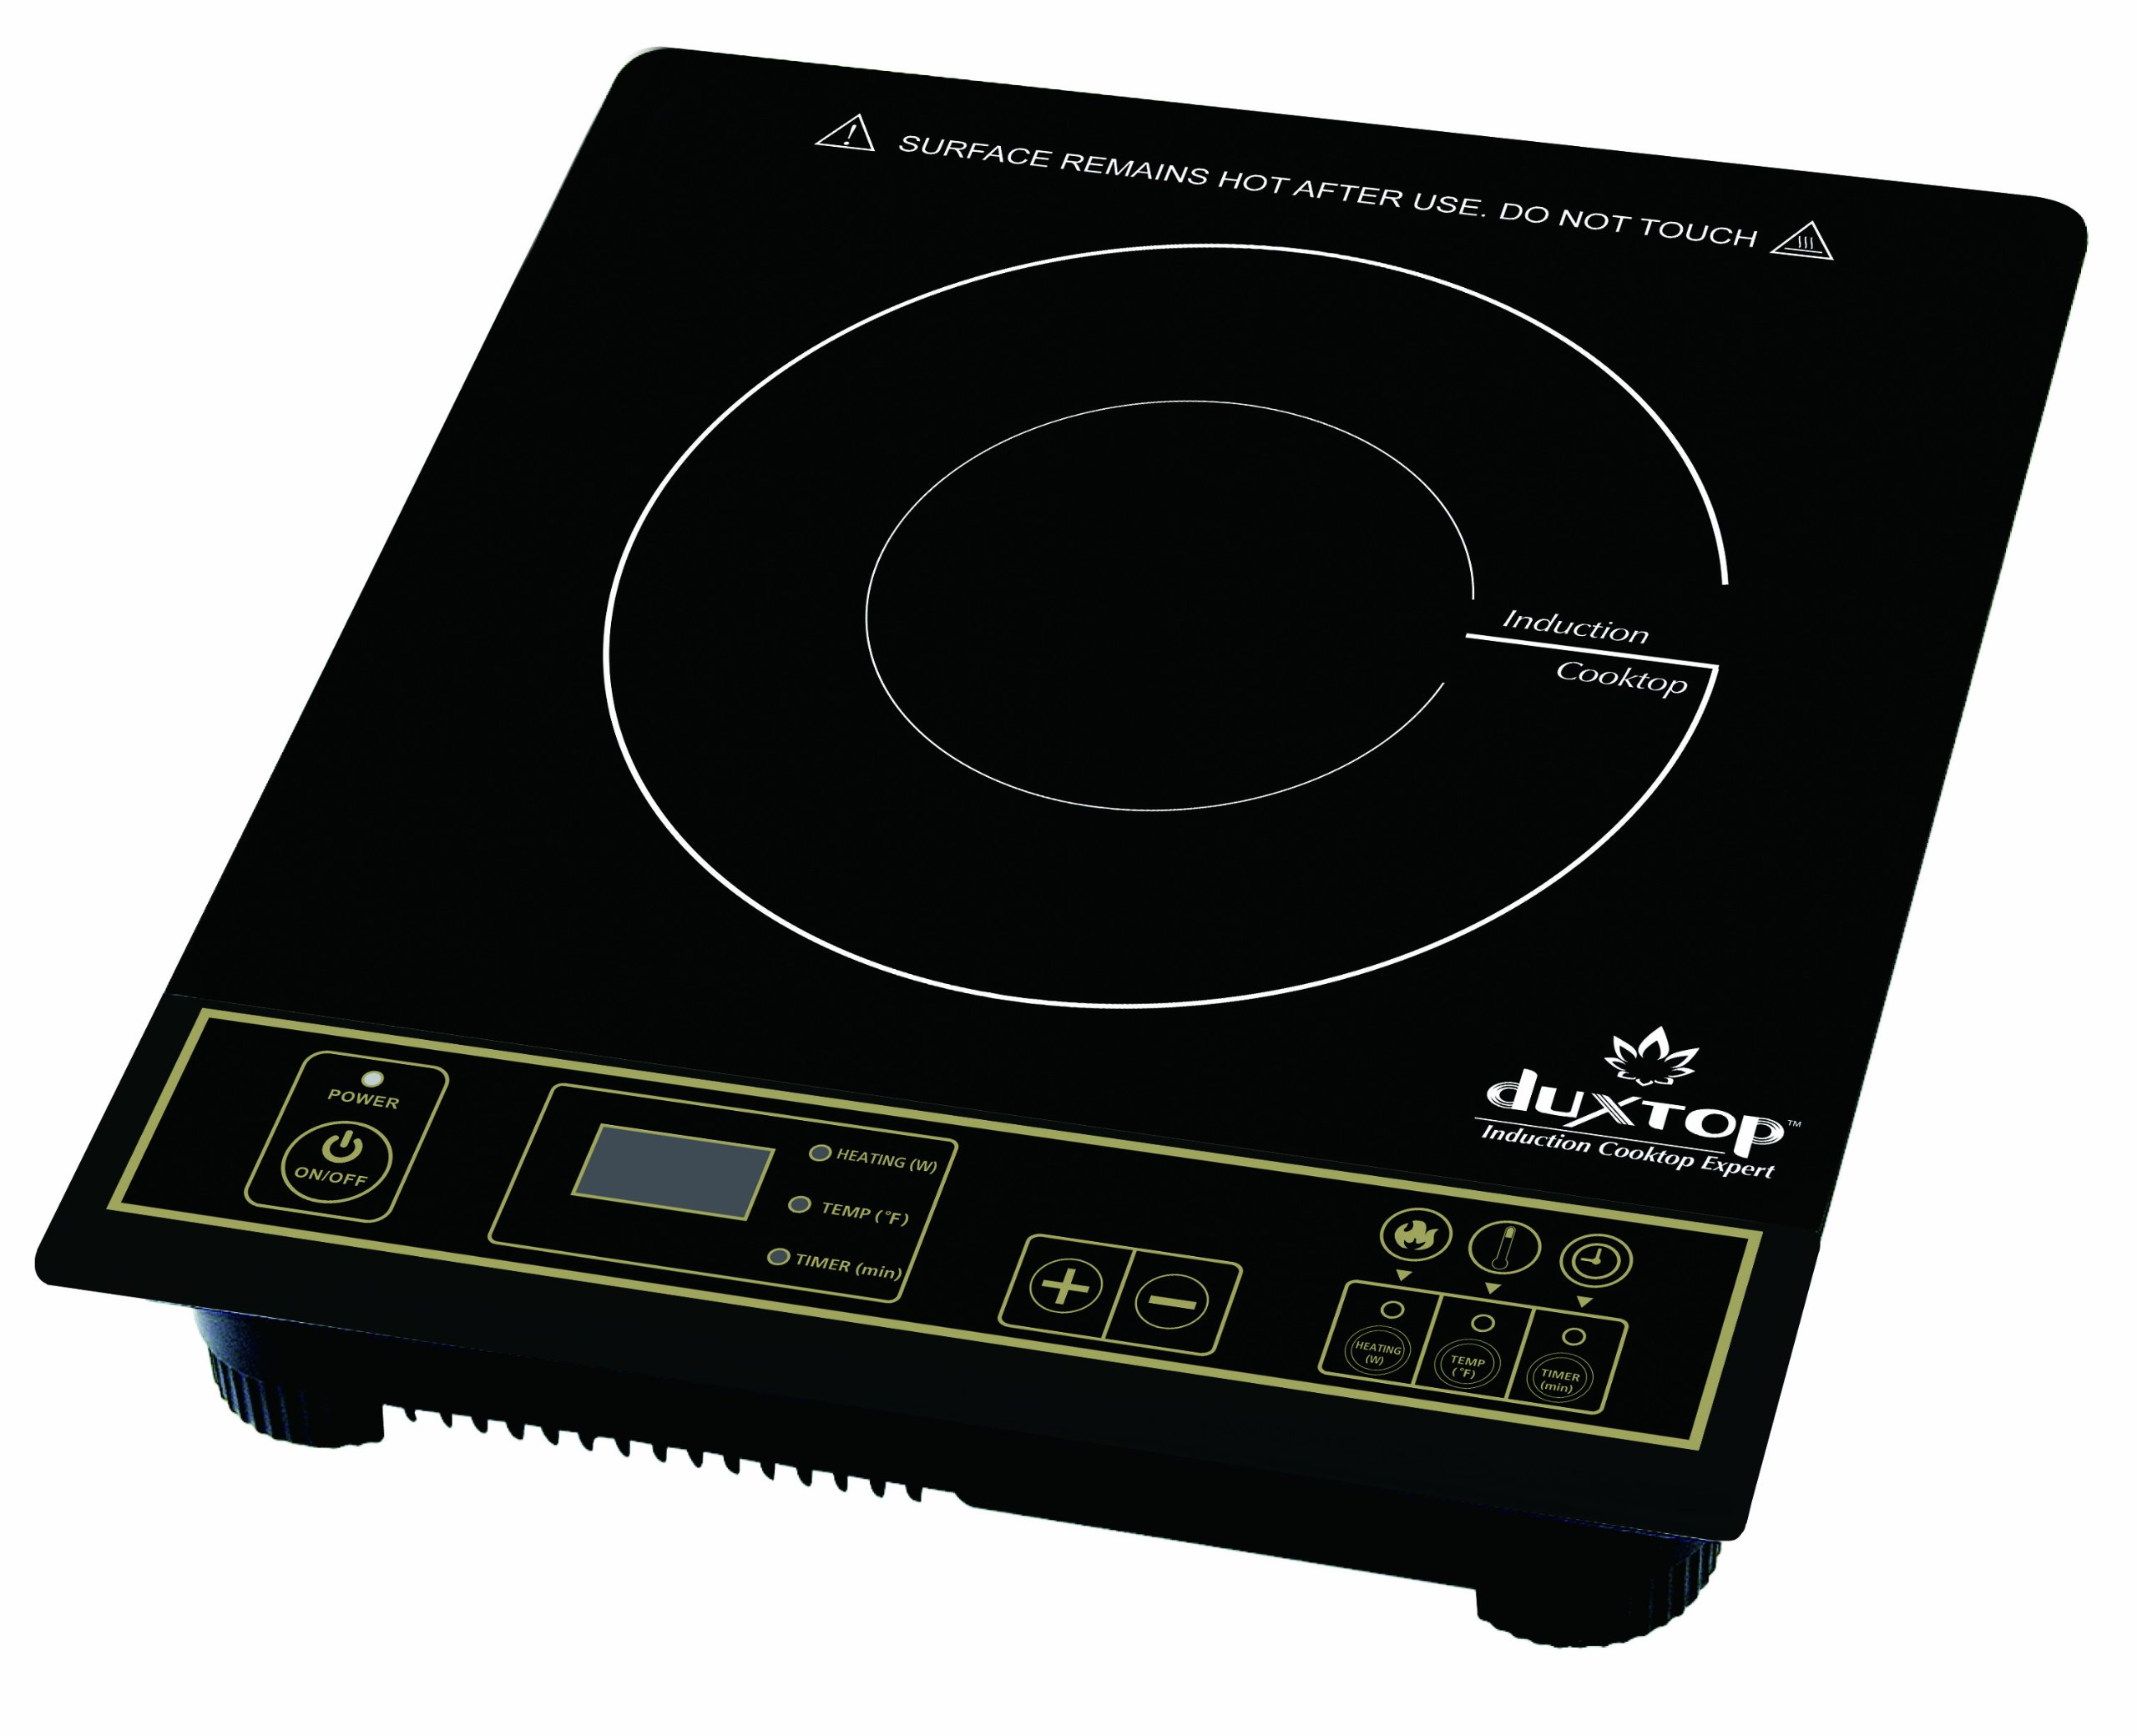 Duxtop 8100MC 1800W Portable Induction Cooktop Countertop Burner, Gold